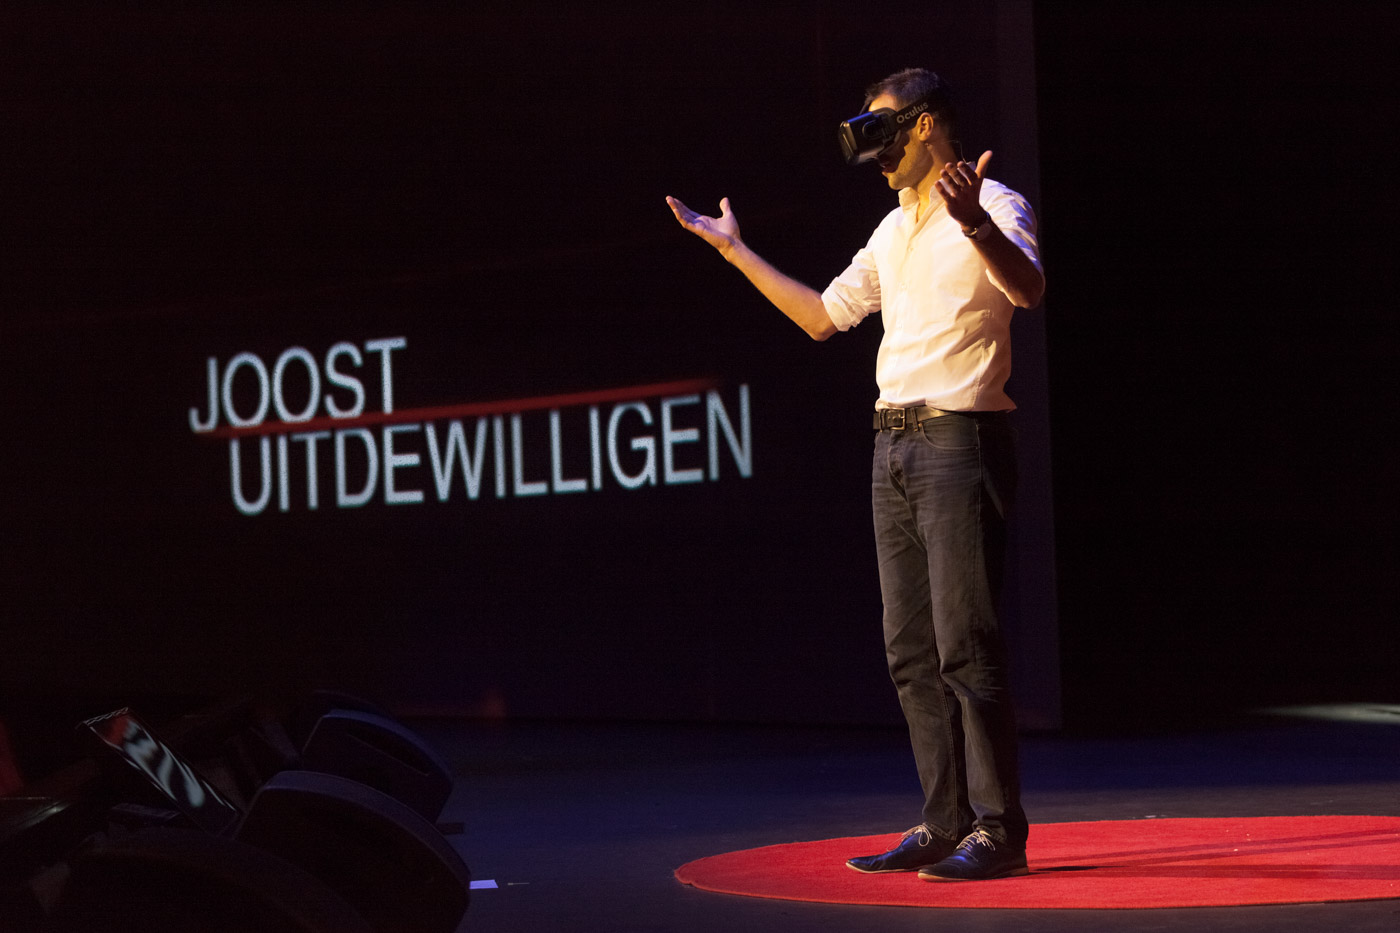 Joost Uitdewillegen – How immersive learning can help us understand each other